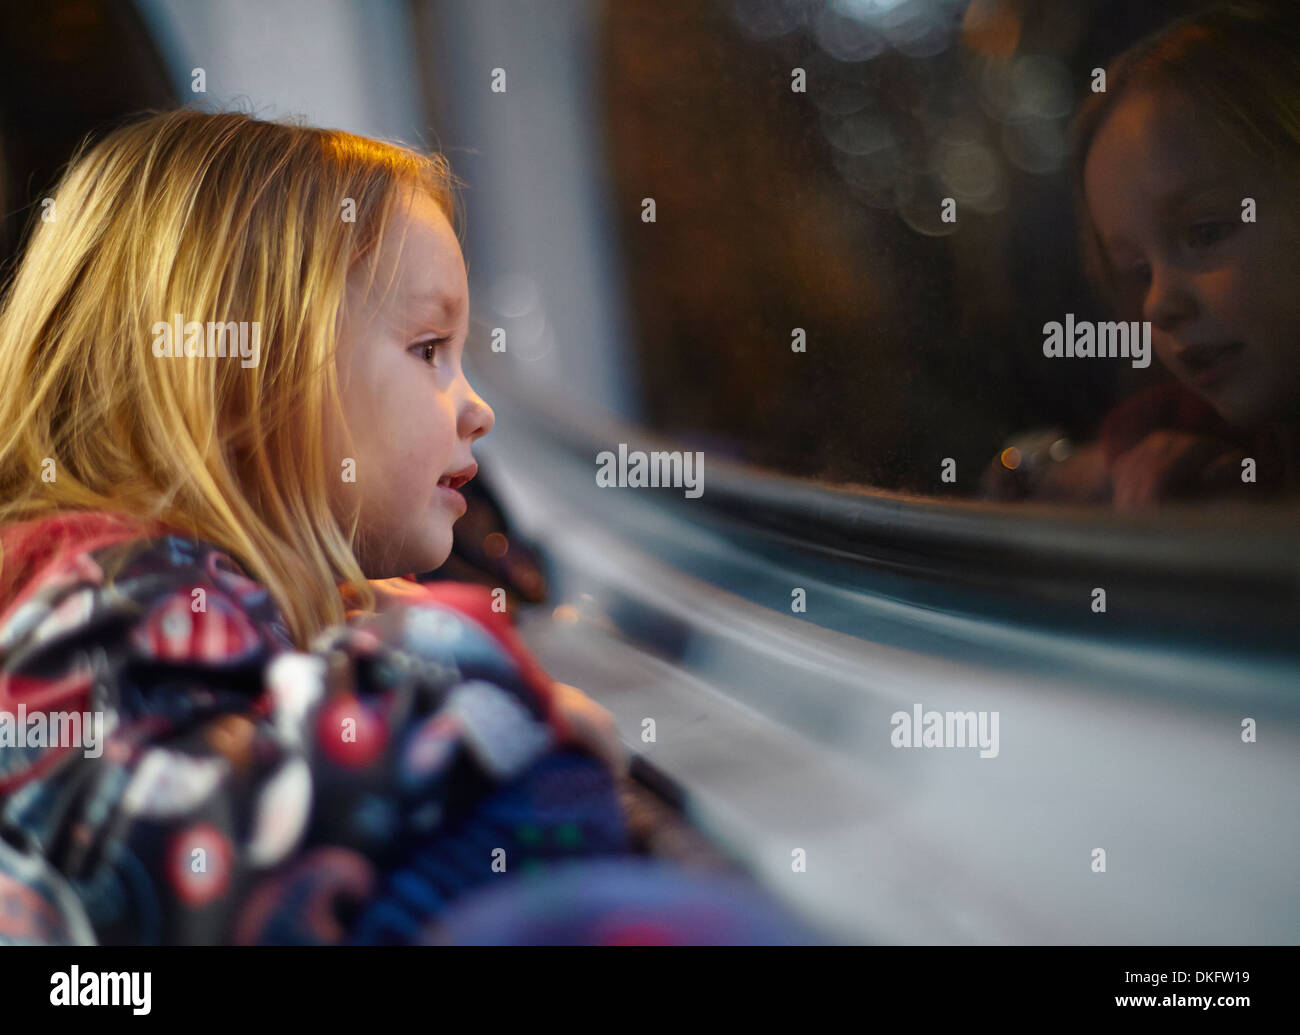 Girl looking out of a bus window during a journey at night - Stock Image